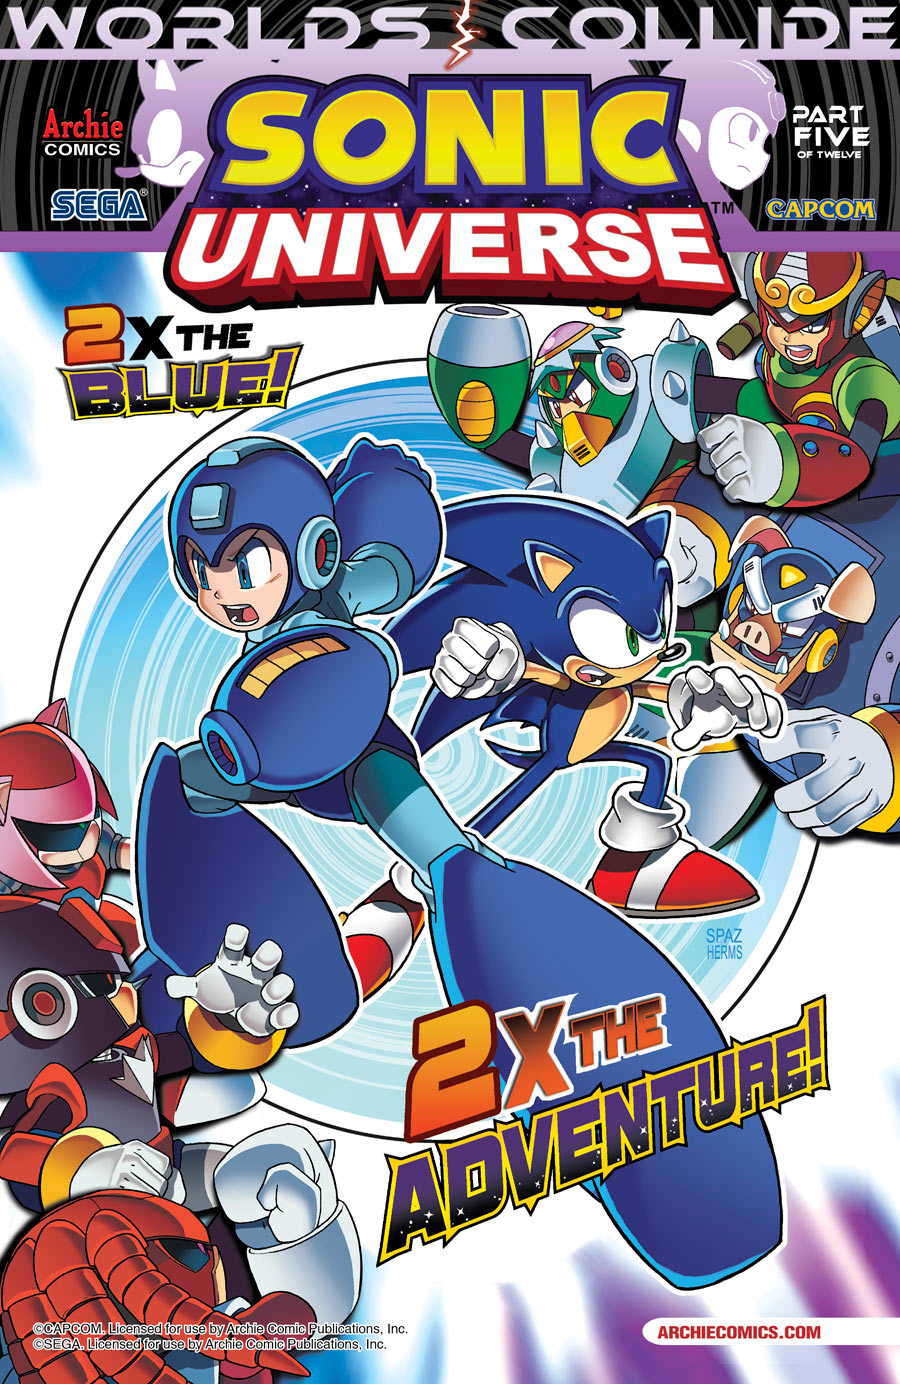 Sonic Universe #2 - iPad Apps & Games on Brothersoft.com